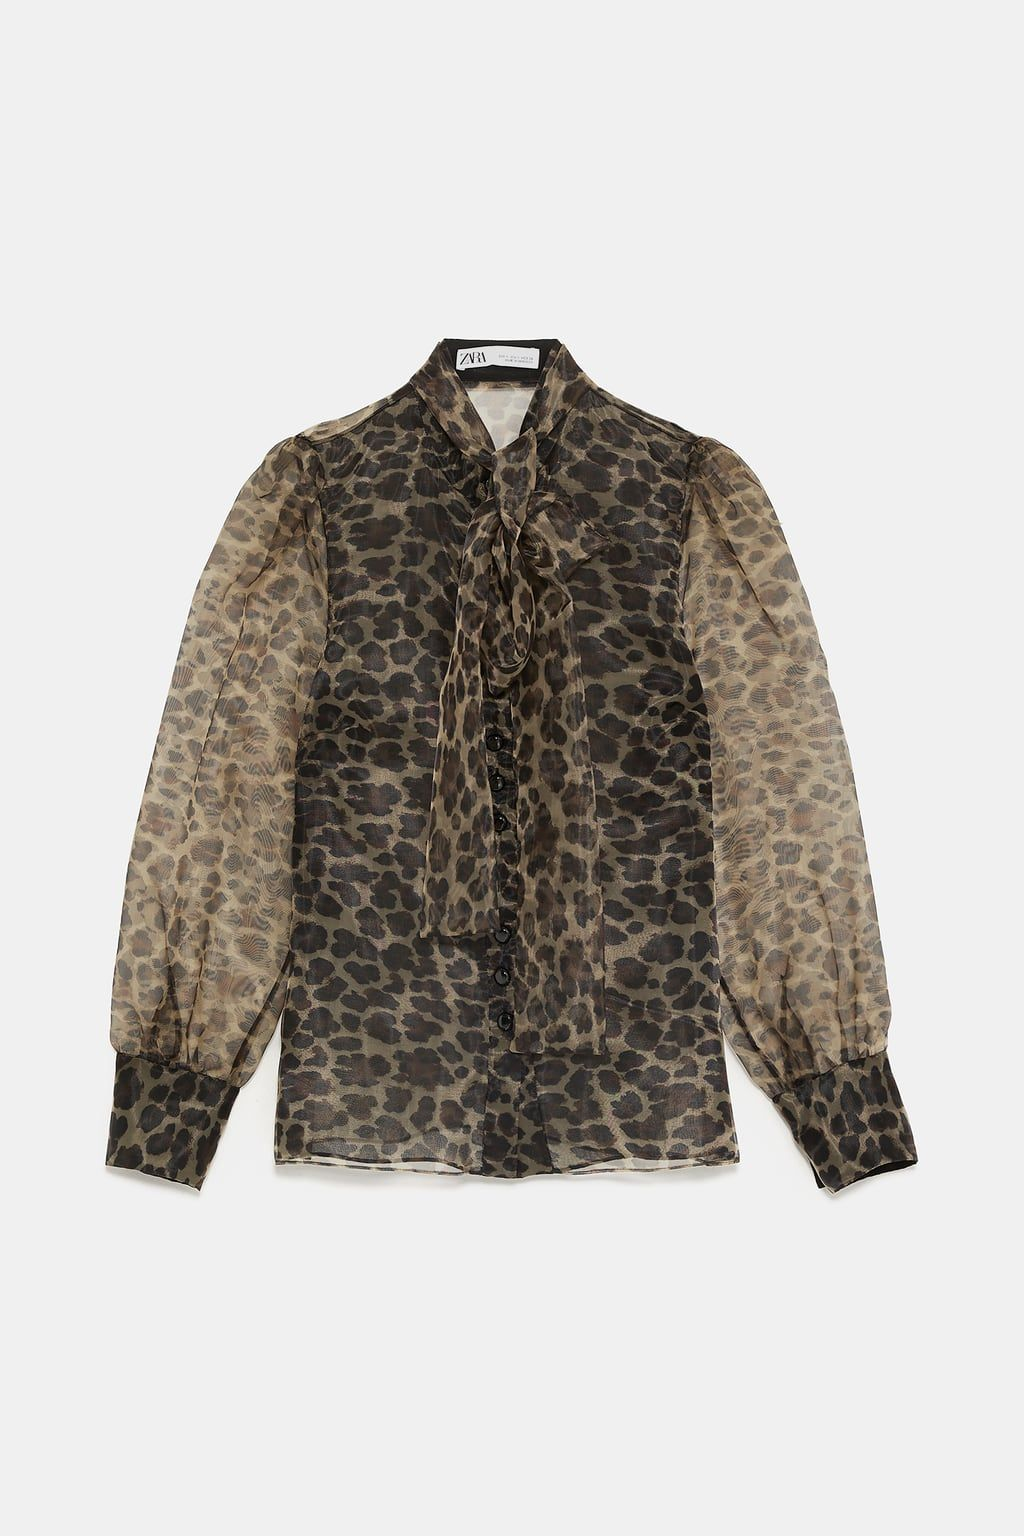 9ba2b90cdcb75e Animal print blouse with tie in 2019   when you wish upon a ...